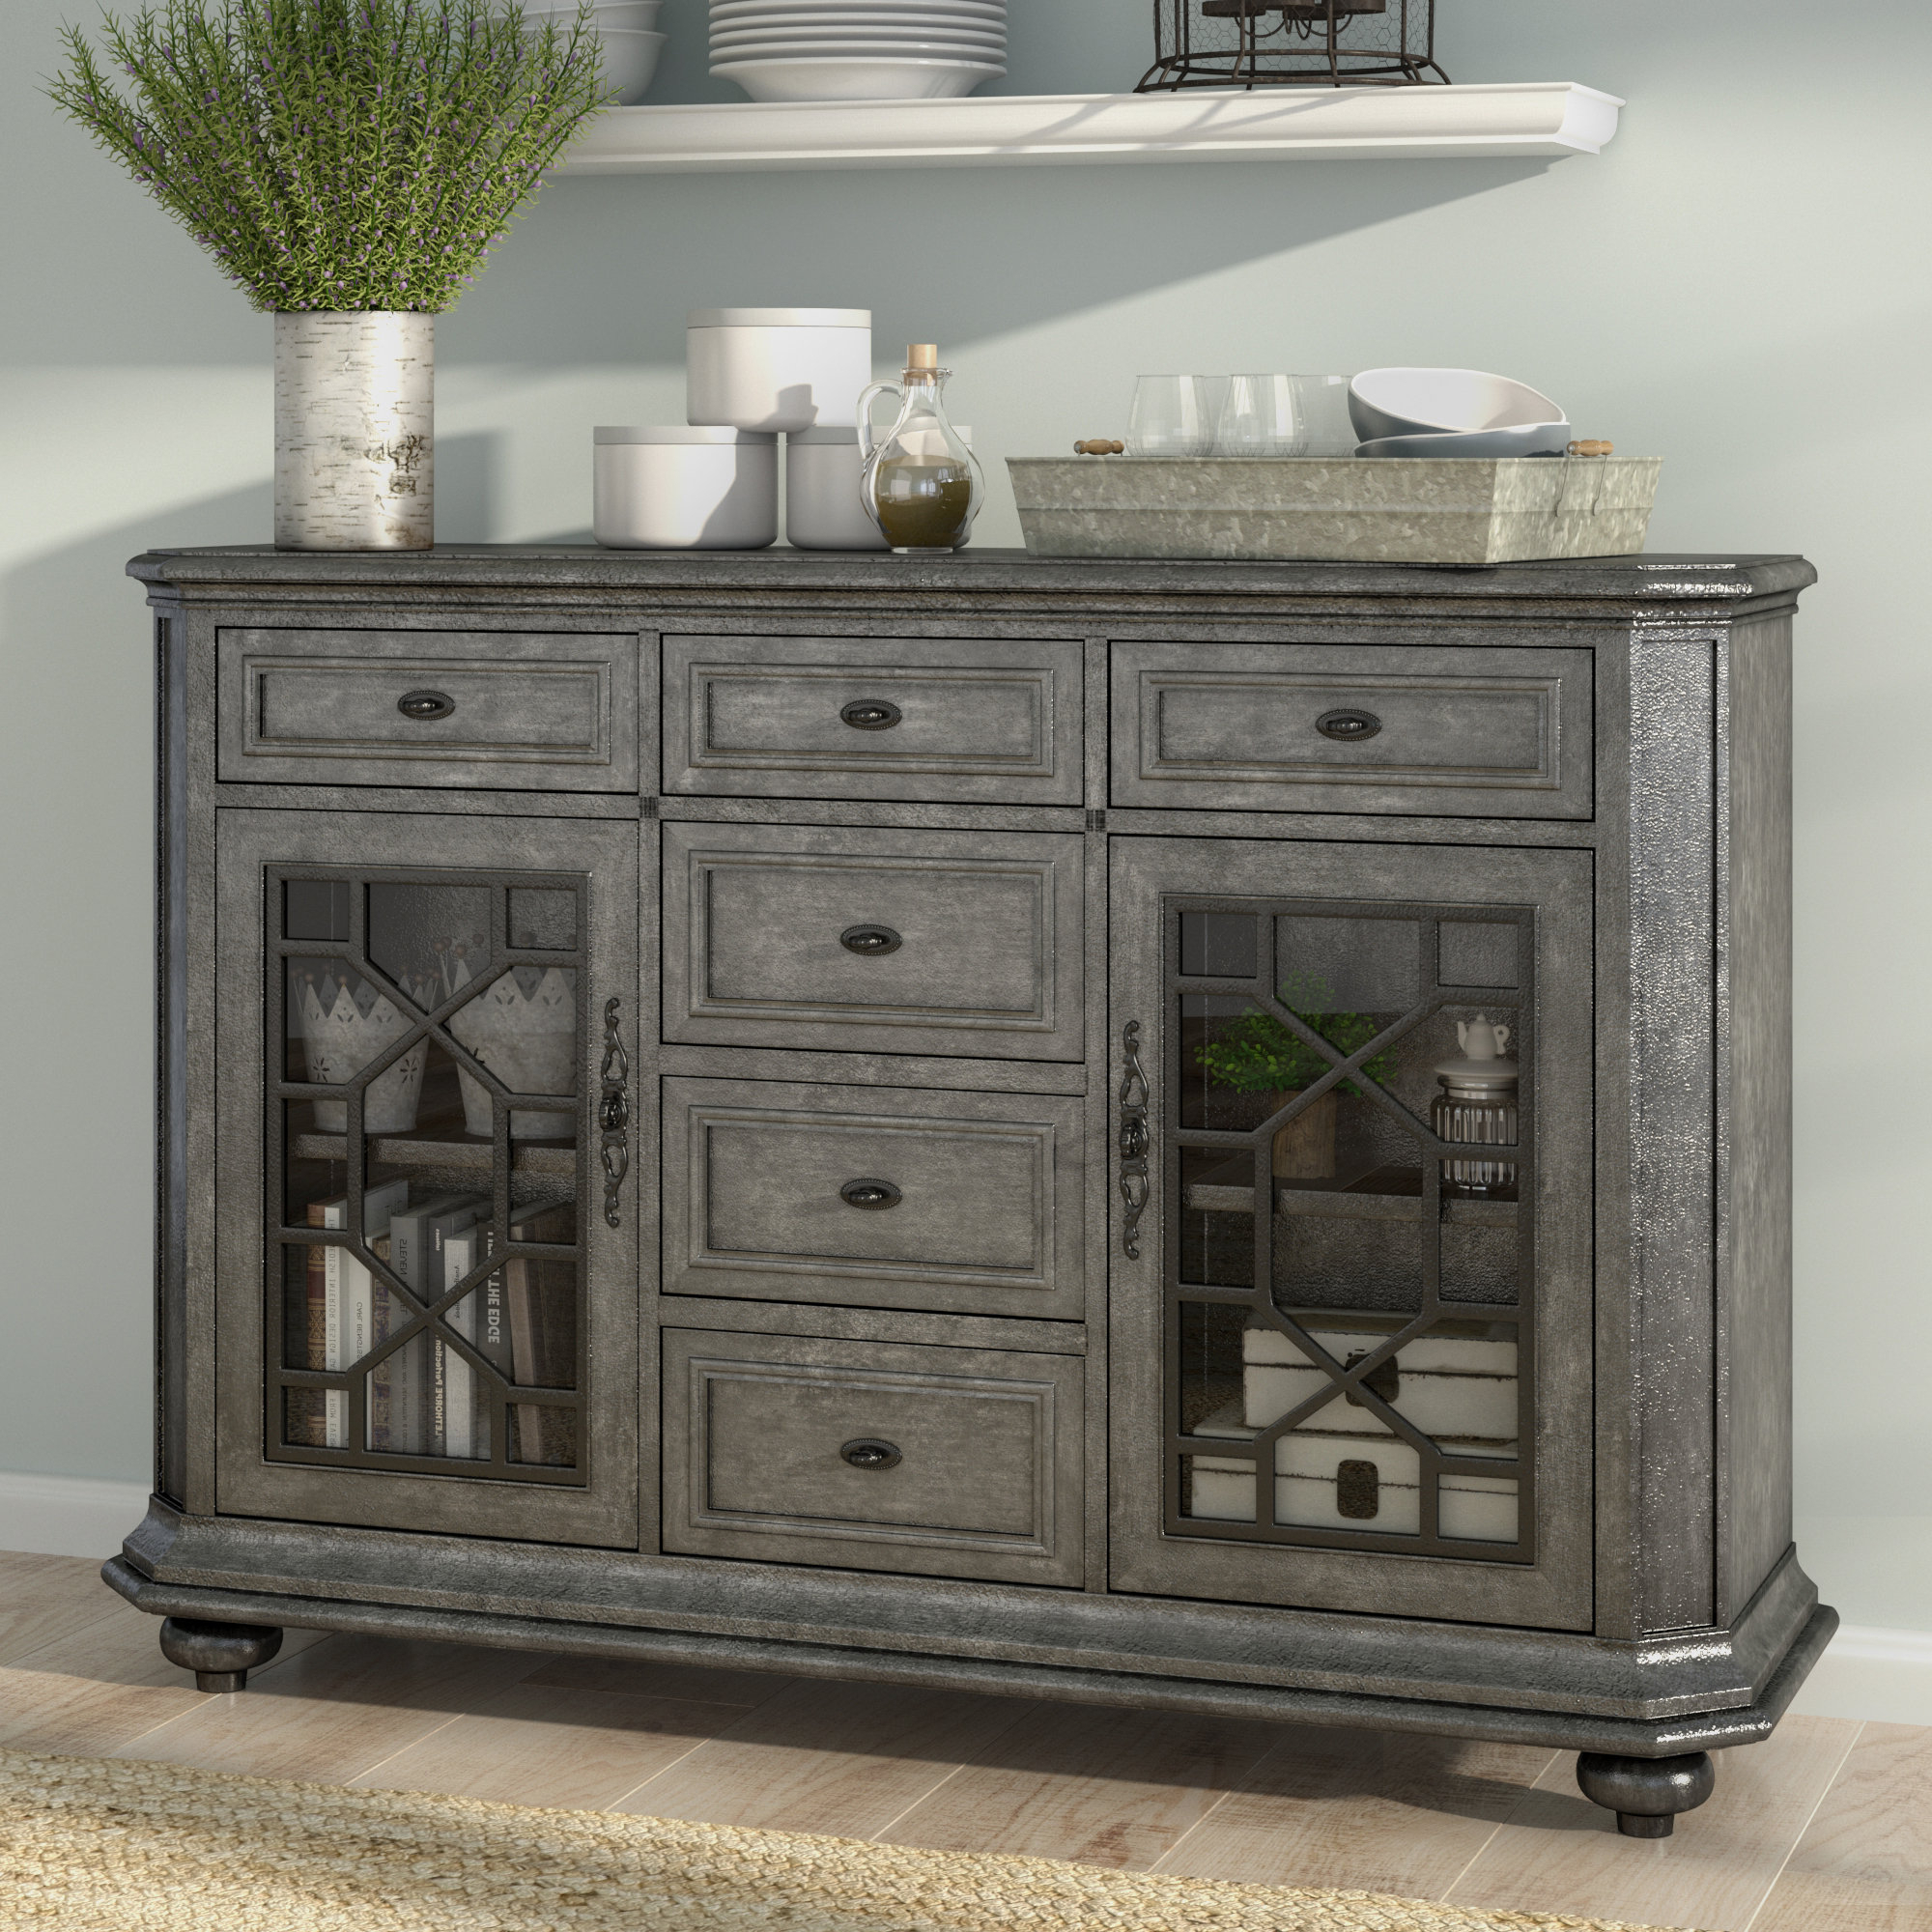 Fashionable Kratz Sideboard For Chicoree Charlena Sideboards (View 3 of 20)